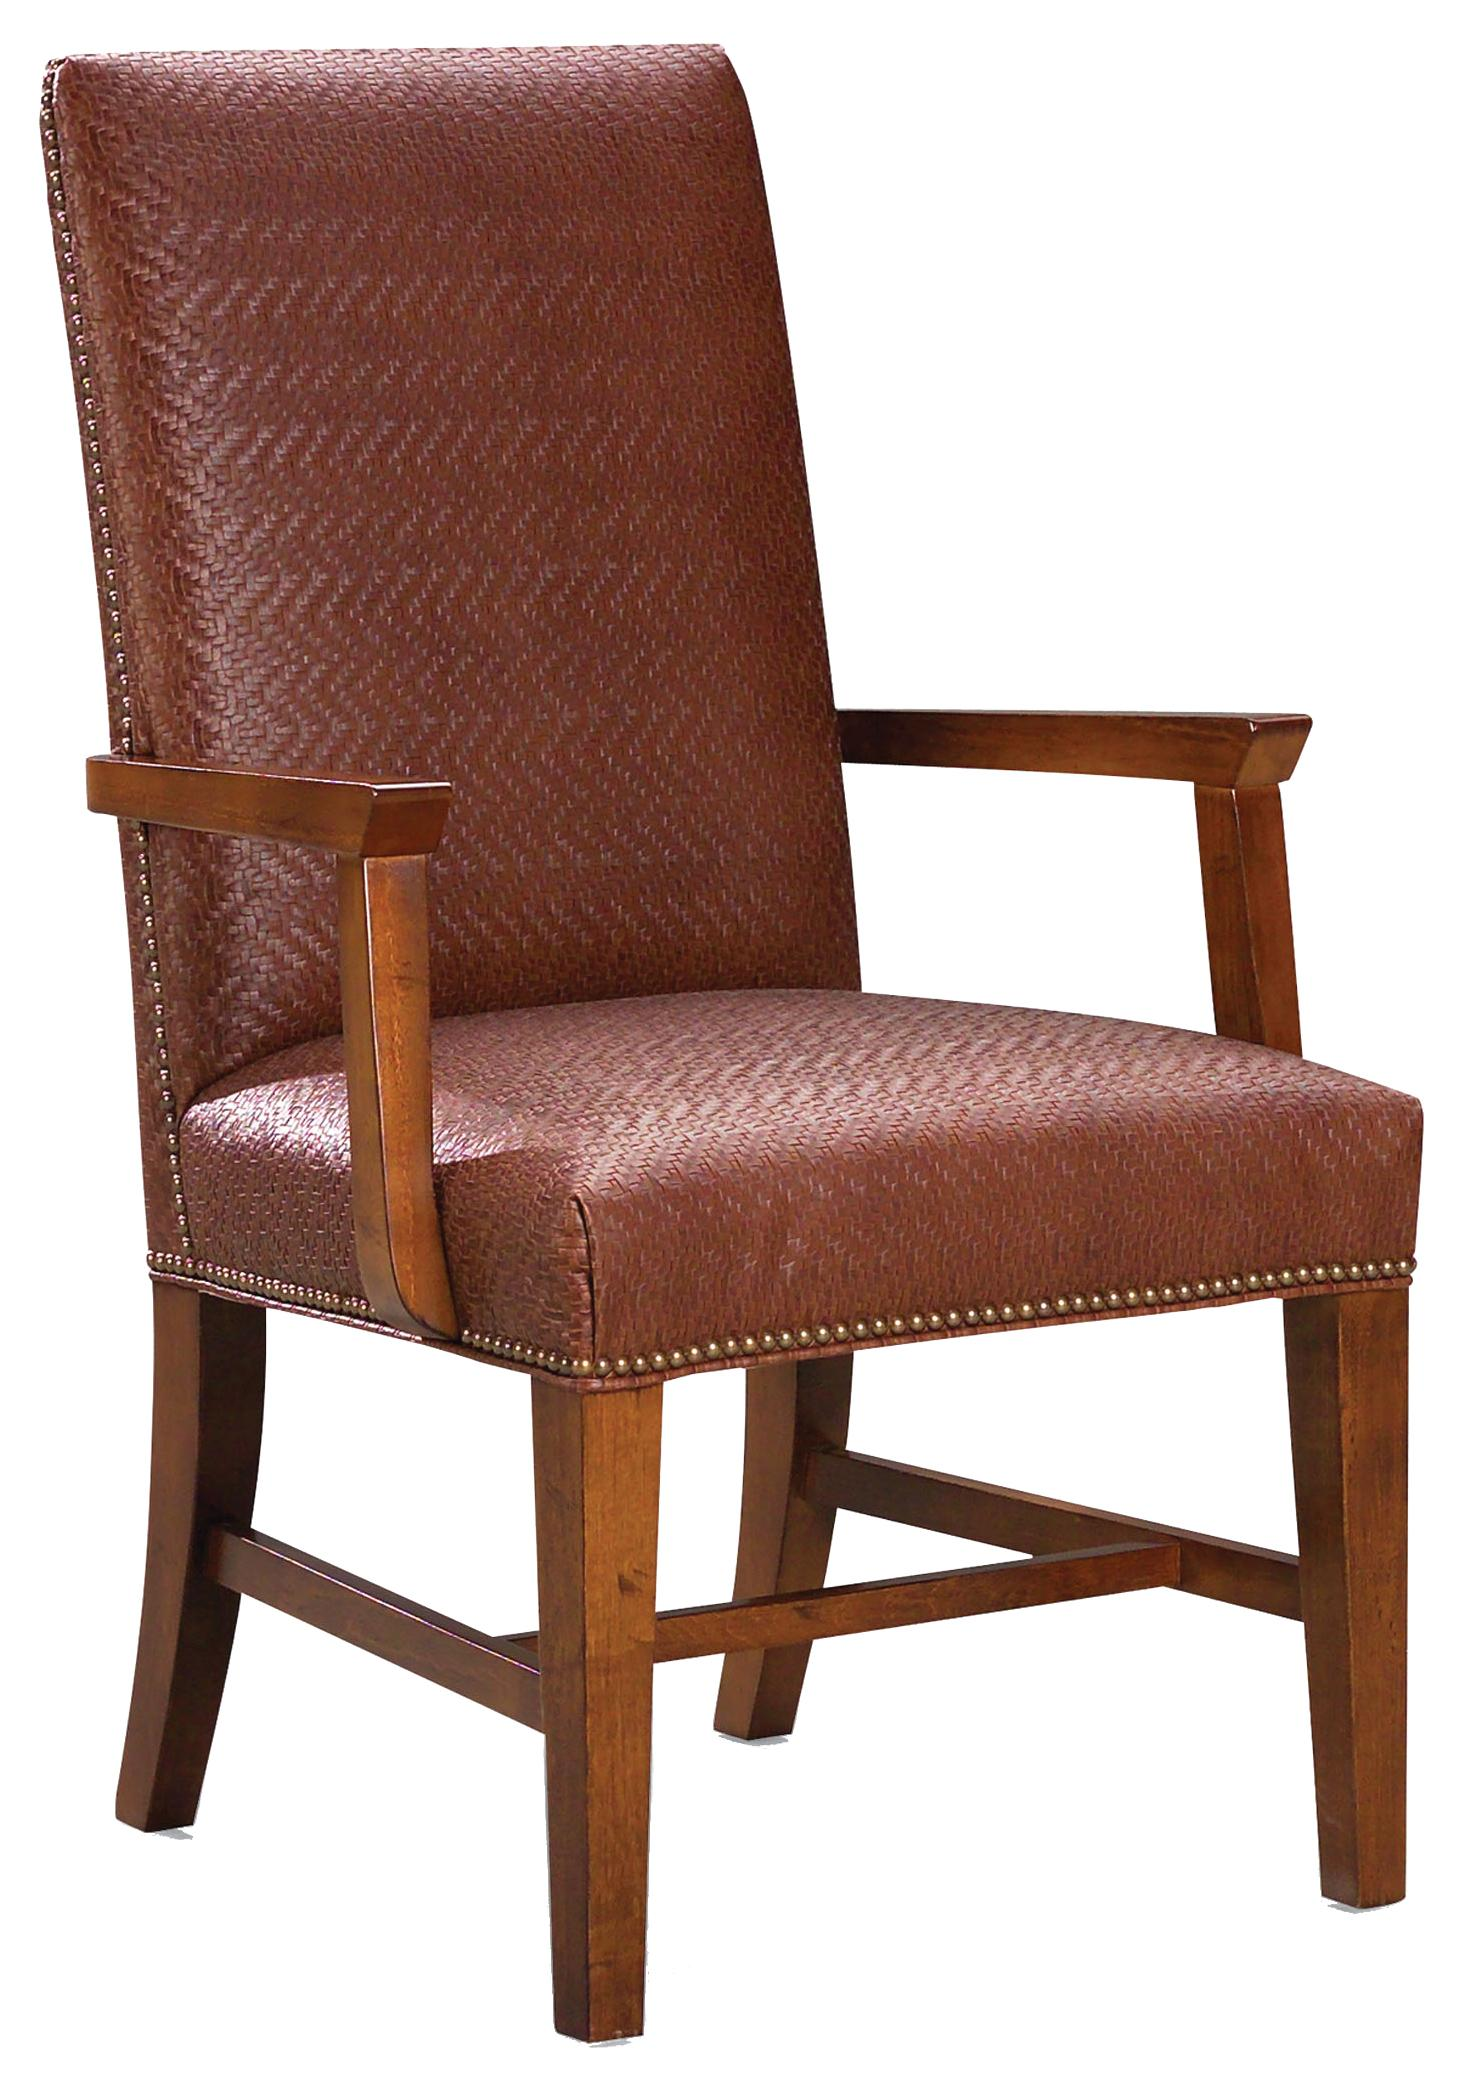 1011  Arm Chair by Fairfield at Esprit Decor Home Furnishings